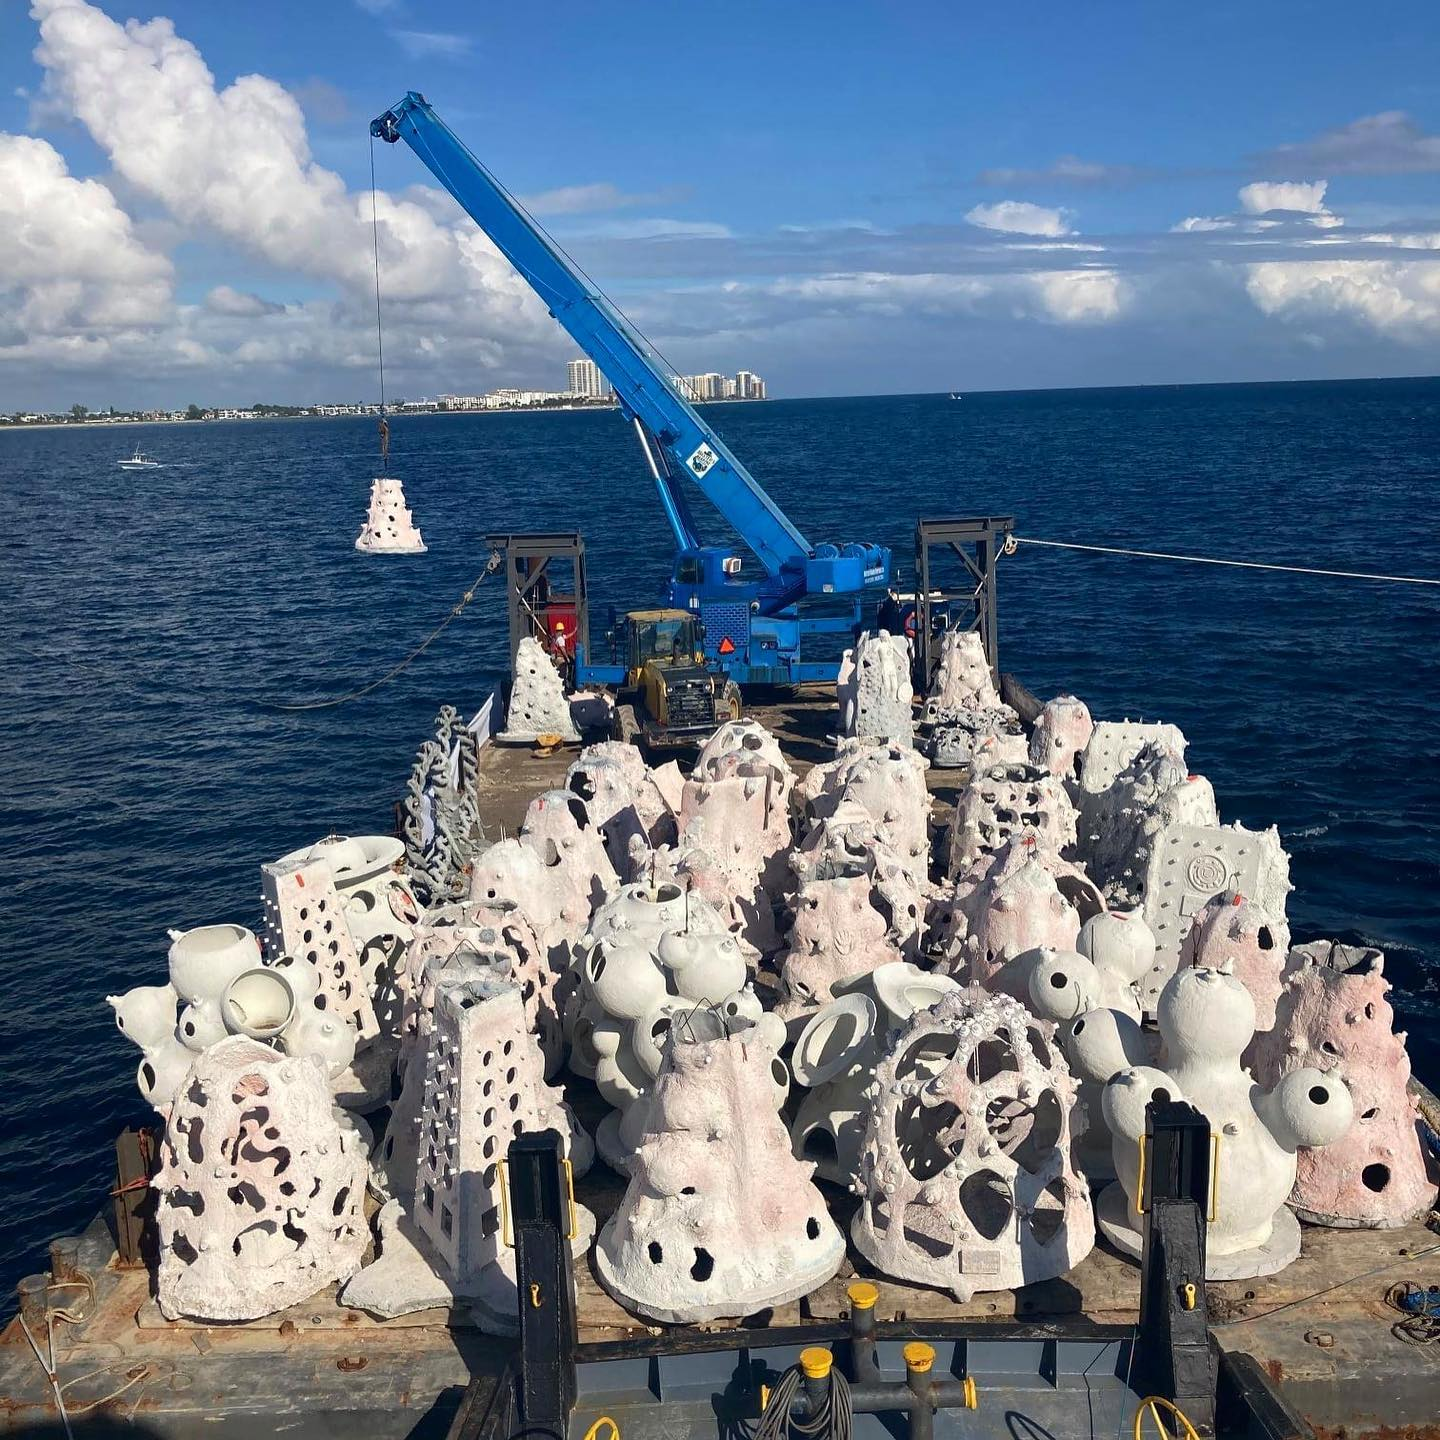 Dania Beach 1000 Mermaids Artificial Reef Project